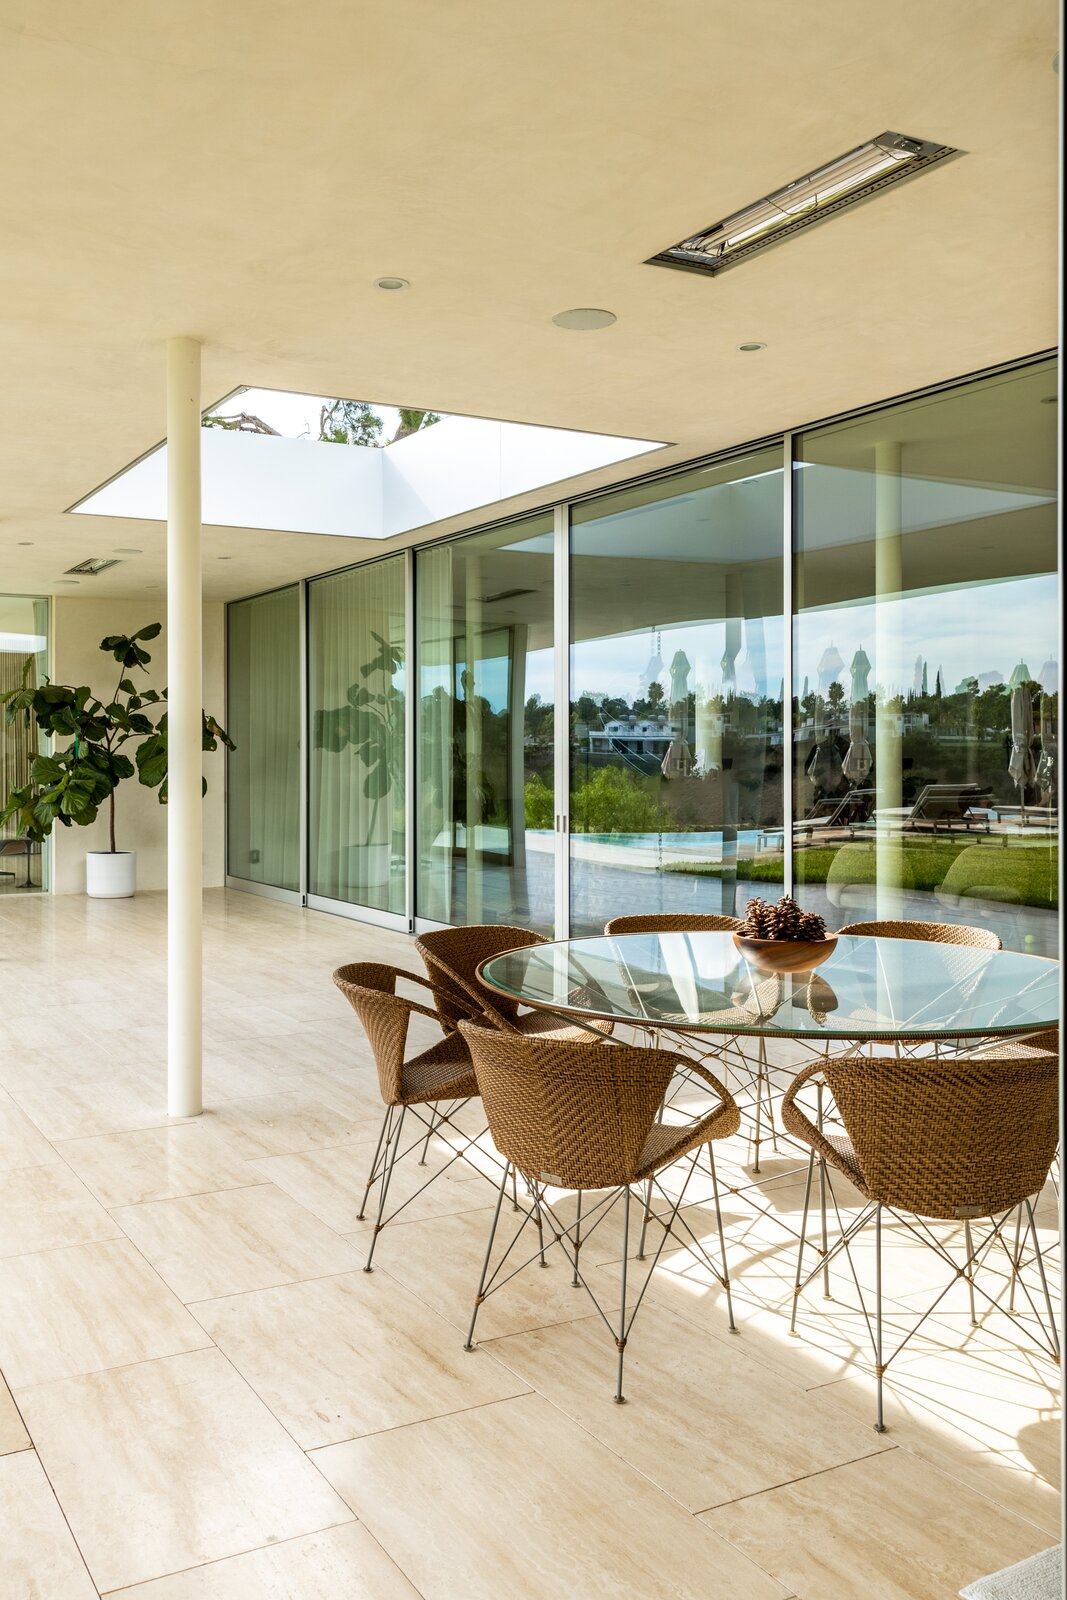 Patio of Clear Oak Residence by Woods & Dangaran Architects